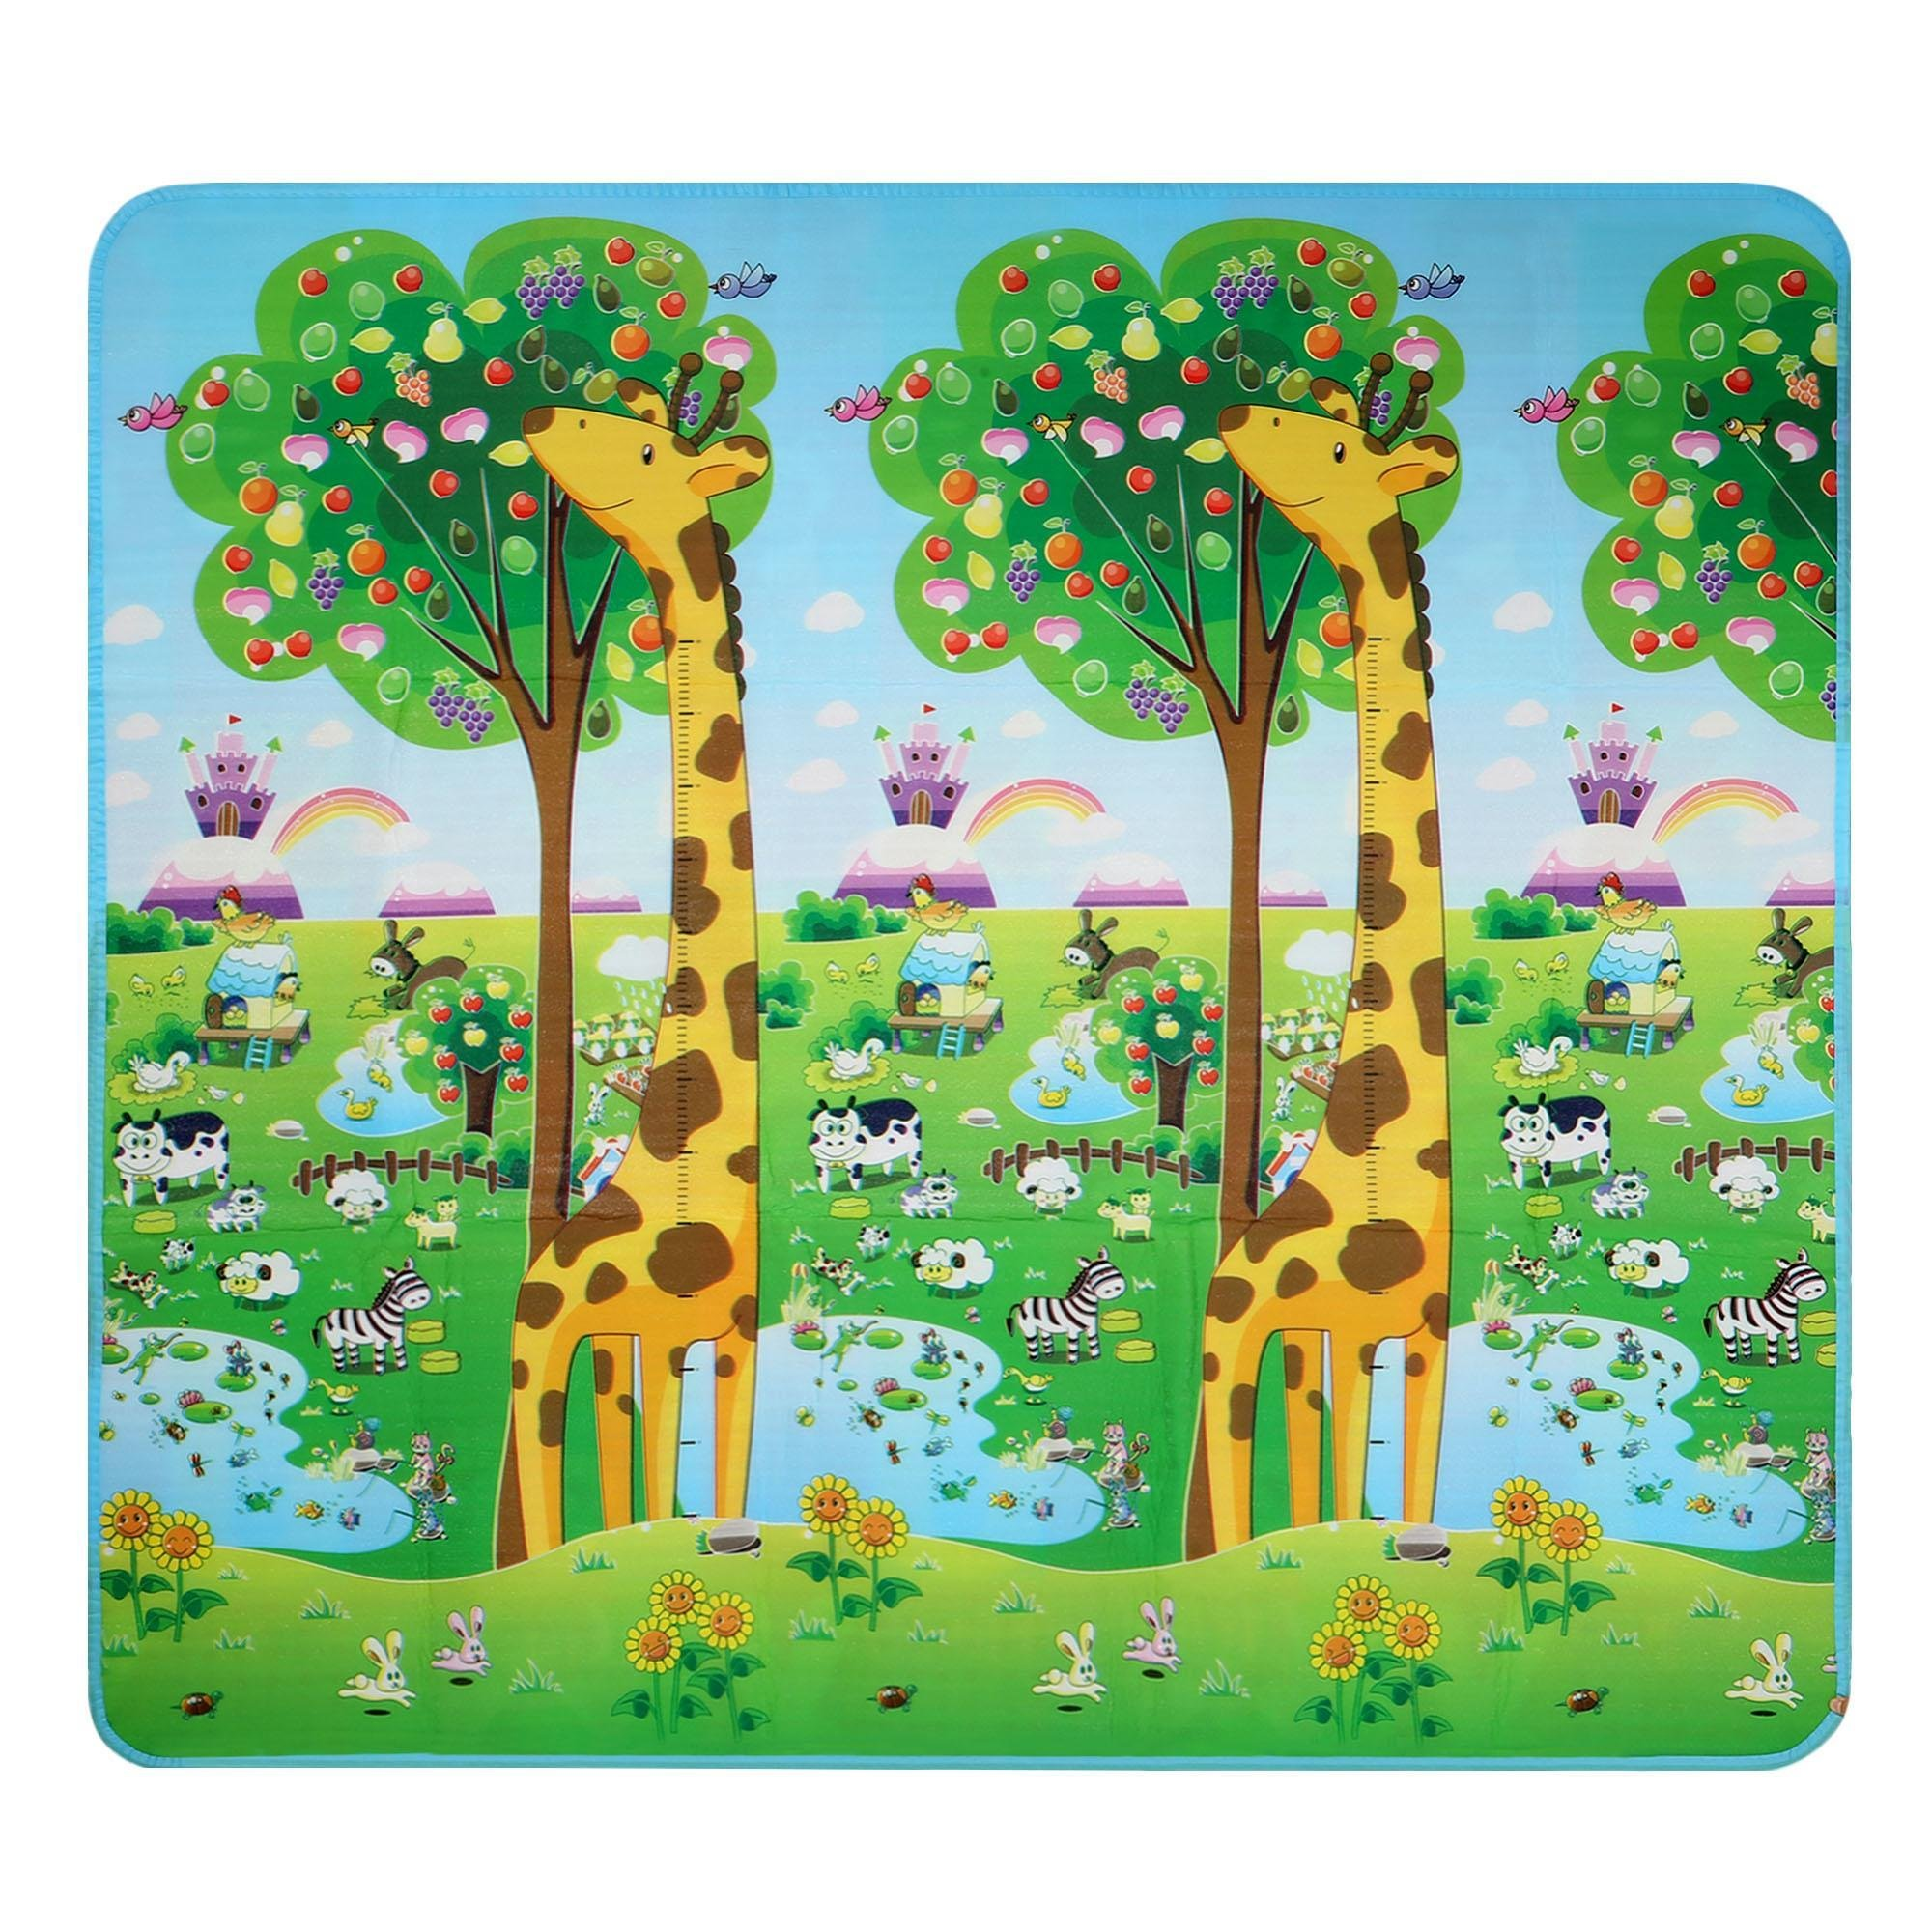 Dtemple Baby Kids Play Mat Crawling Mat Double Sides Foam Floor Activity Mat, Non-toxic Waterproof Toy Rug (US Stock) (Bear and Giraffe)